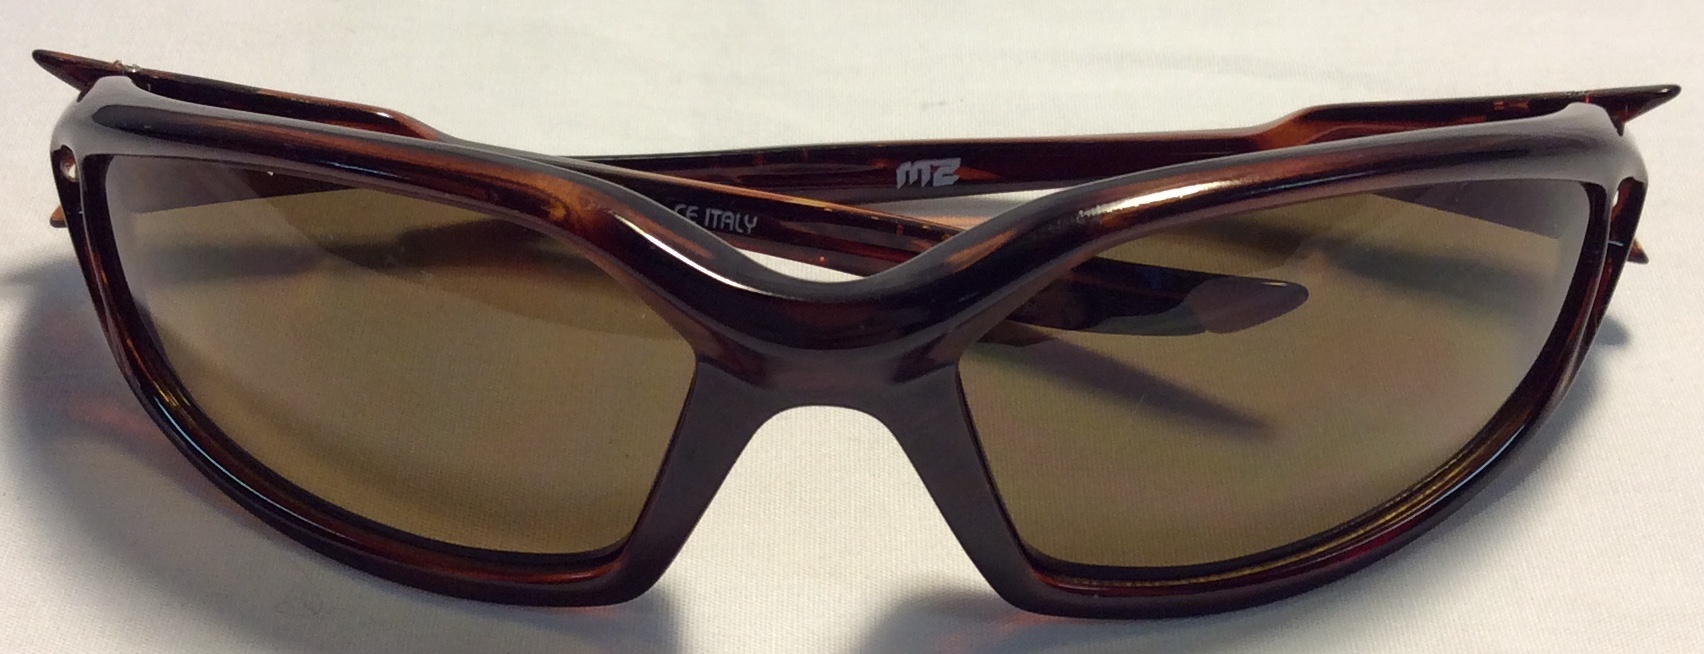 Spy Optic Red/brown plastic frames